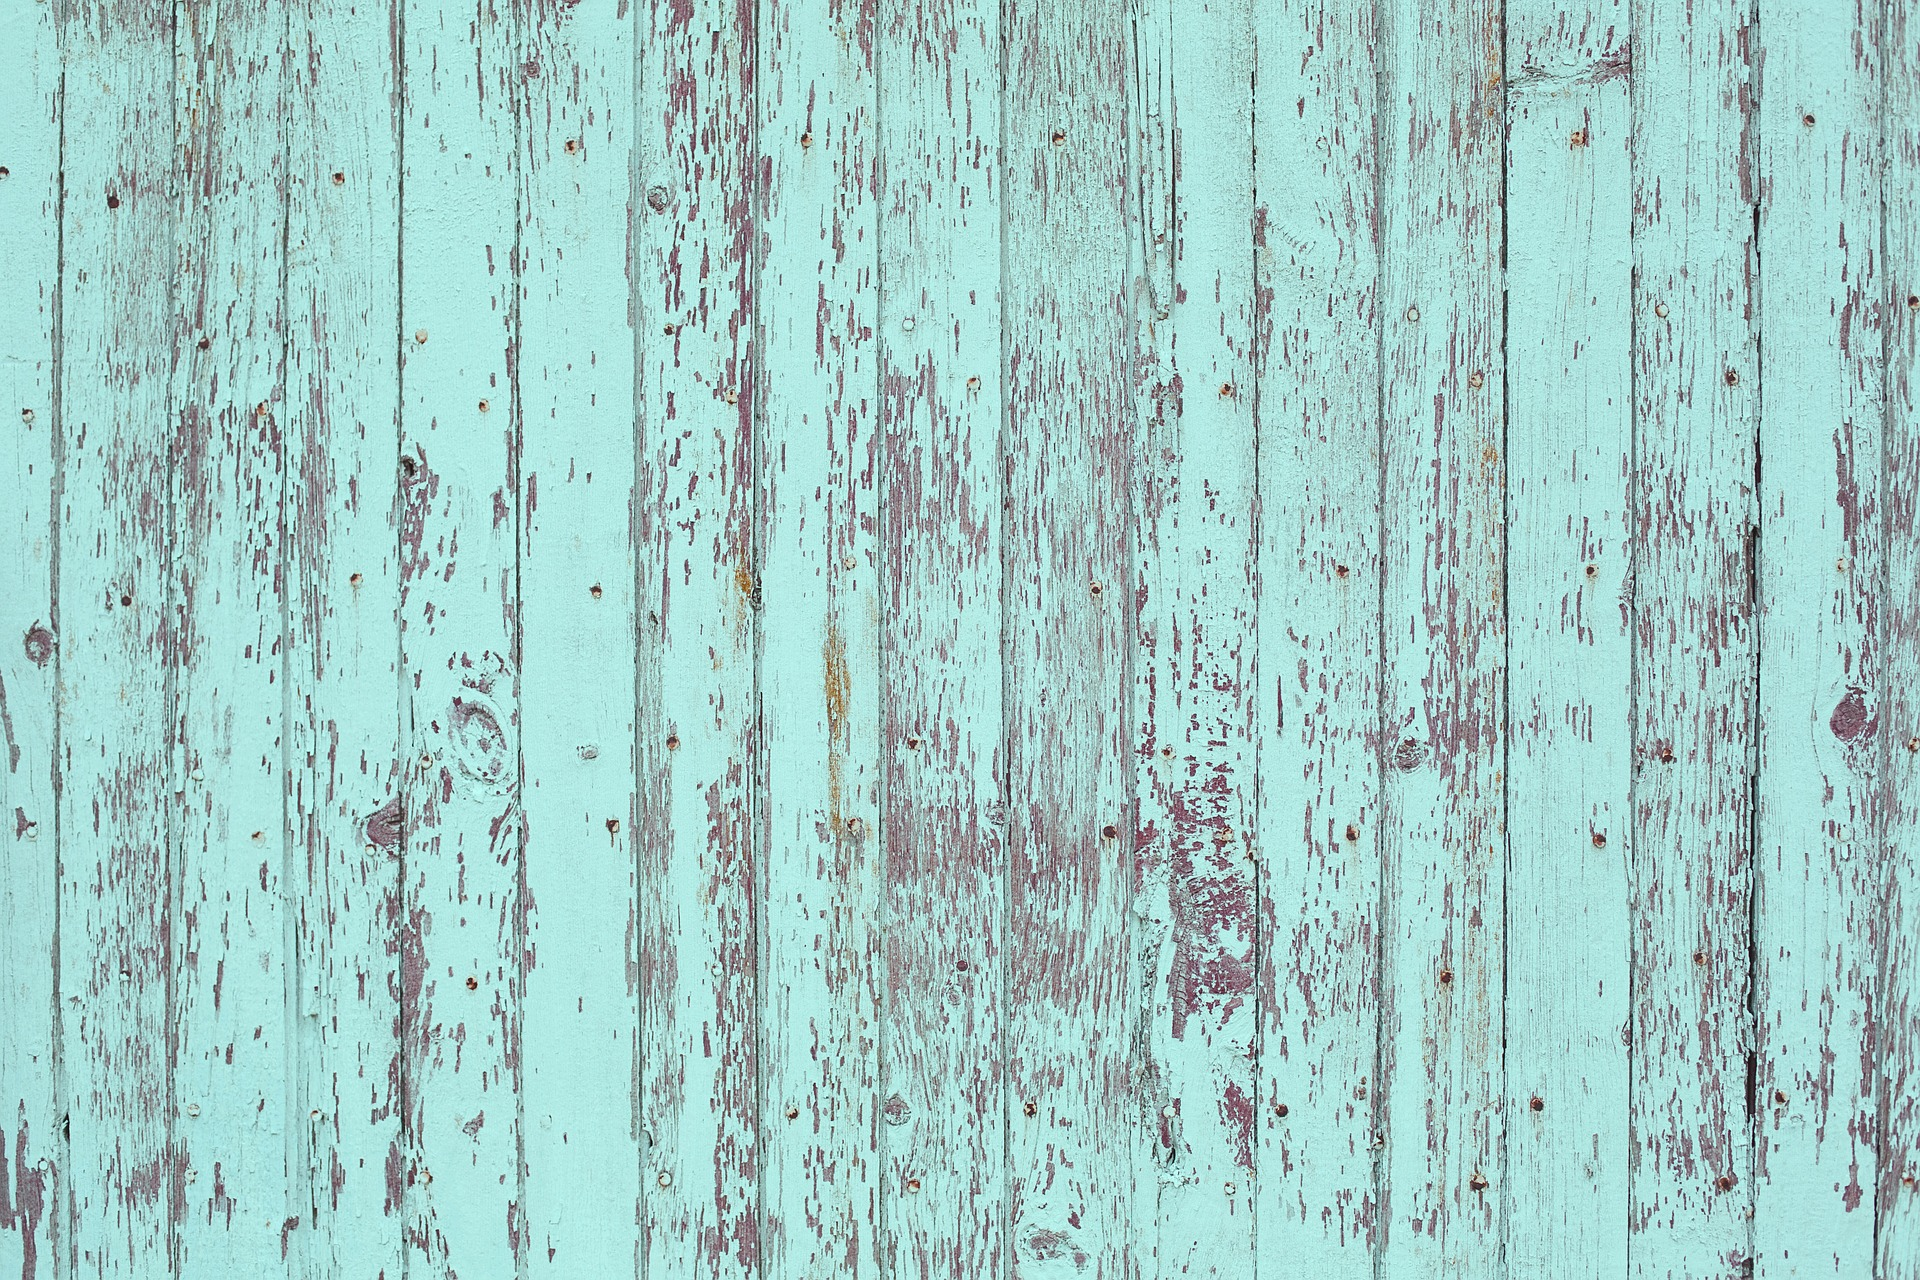 Wooden Texture, Design, Painted, Texture, Wood, HQ Photo